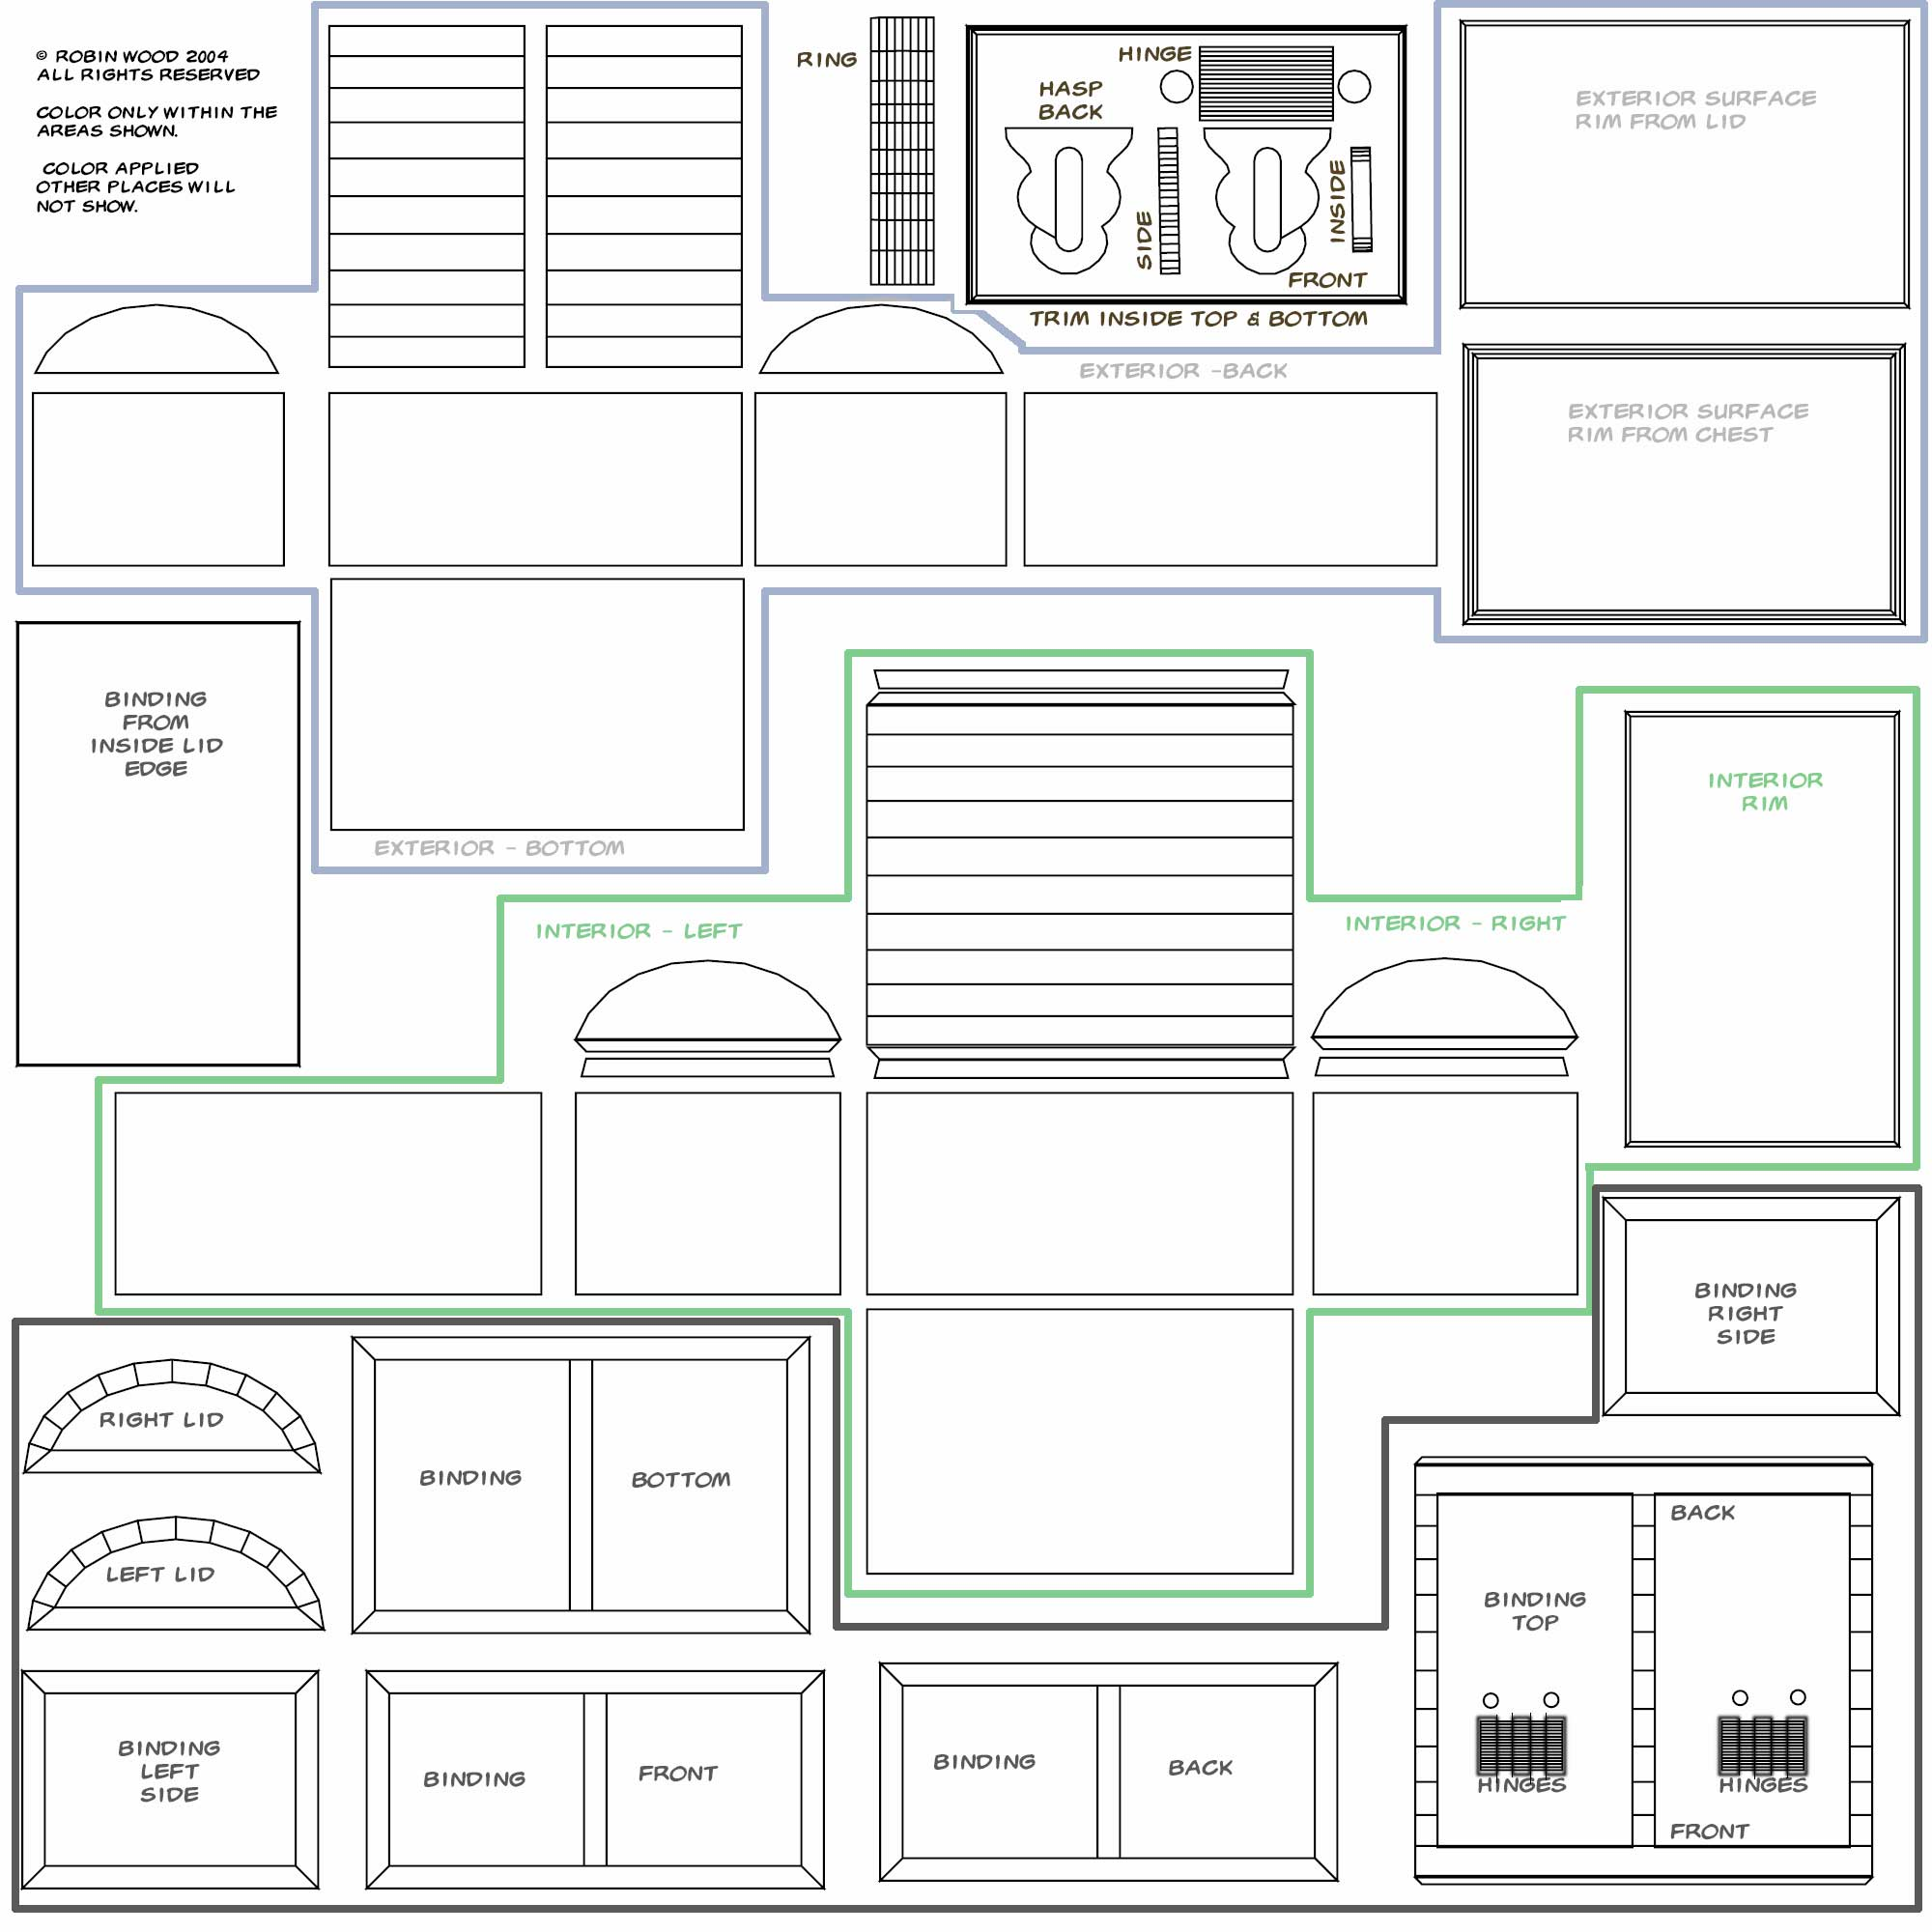 photo relating to Treasure Chest Template Printable titled Totally free Treasure Upper body Design and style © Copyright Robin Picket